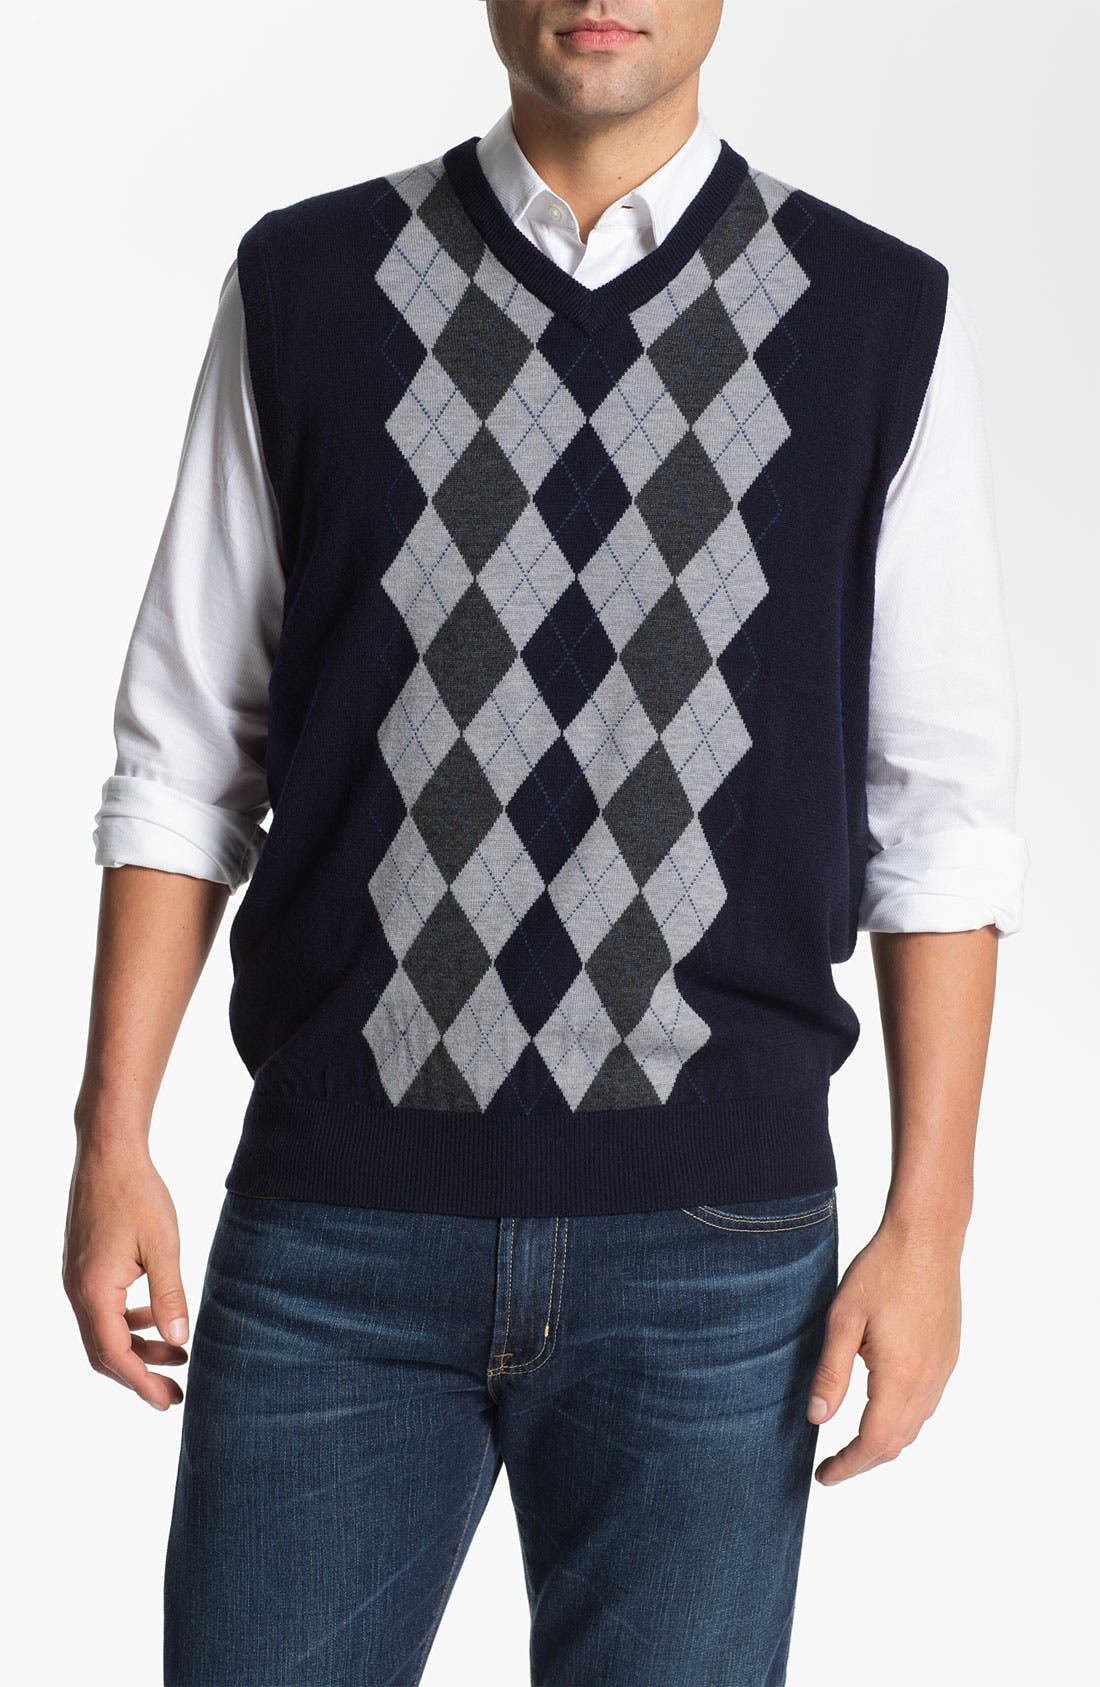 Main Image - Toscano V-Neck Wool Blend Sweater Vest